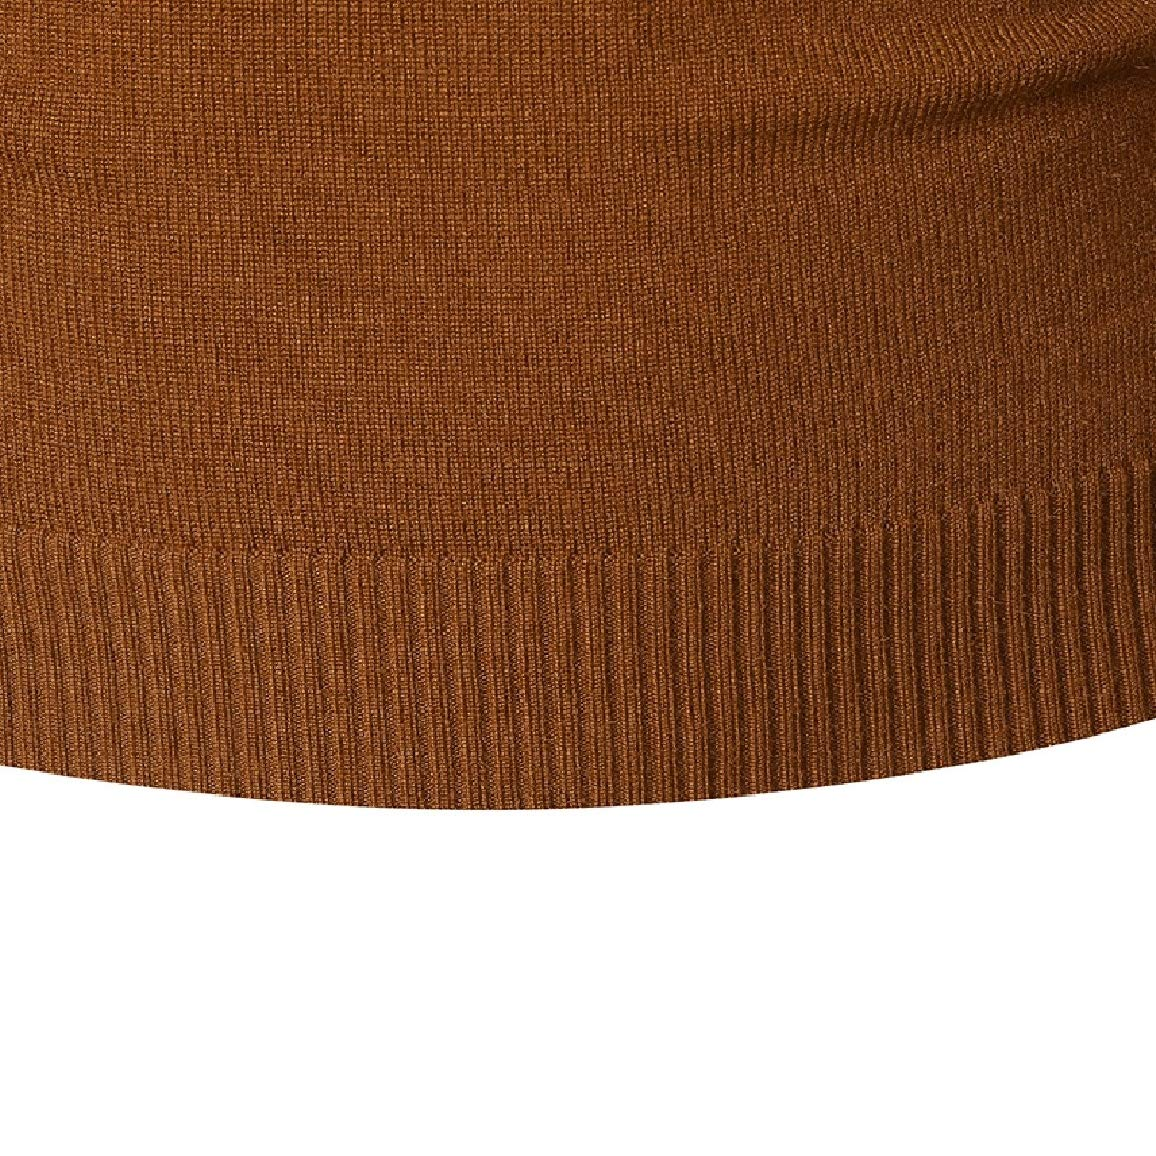 Nicelly Men Crew Neck Comfy Stretchy Splice Pullover Knitted Jersey Sweaters